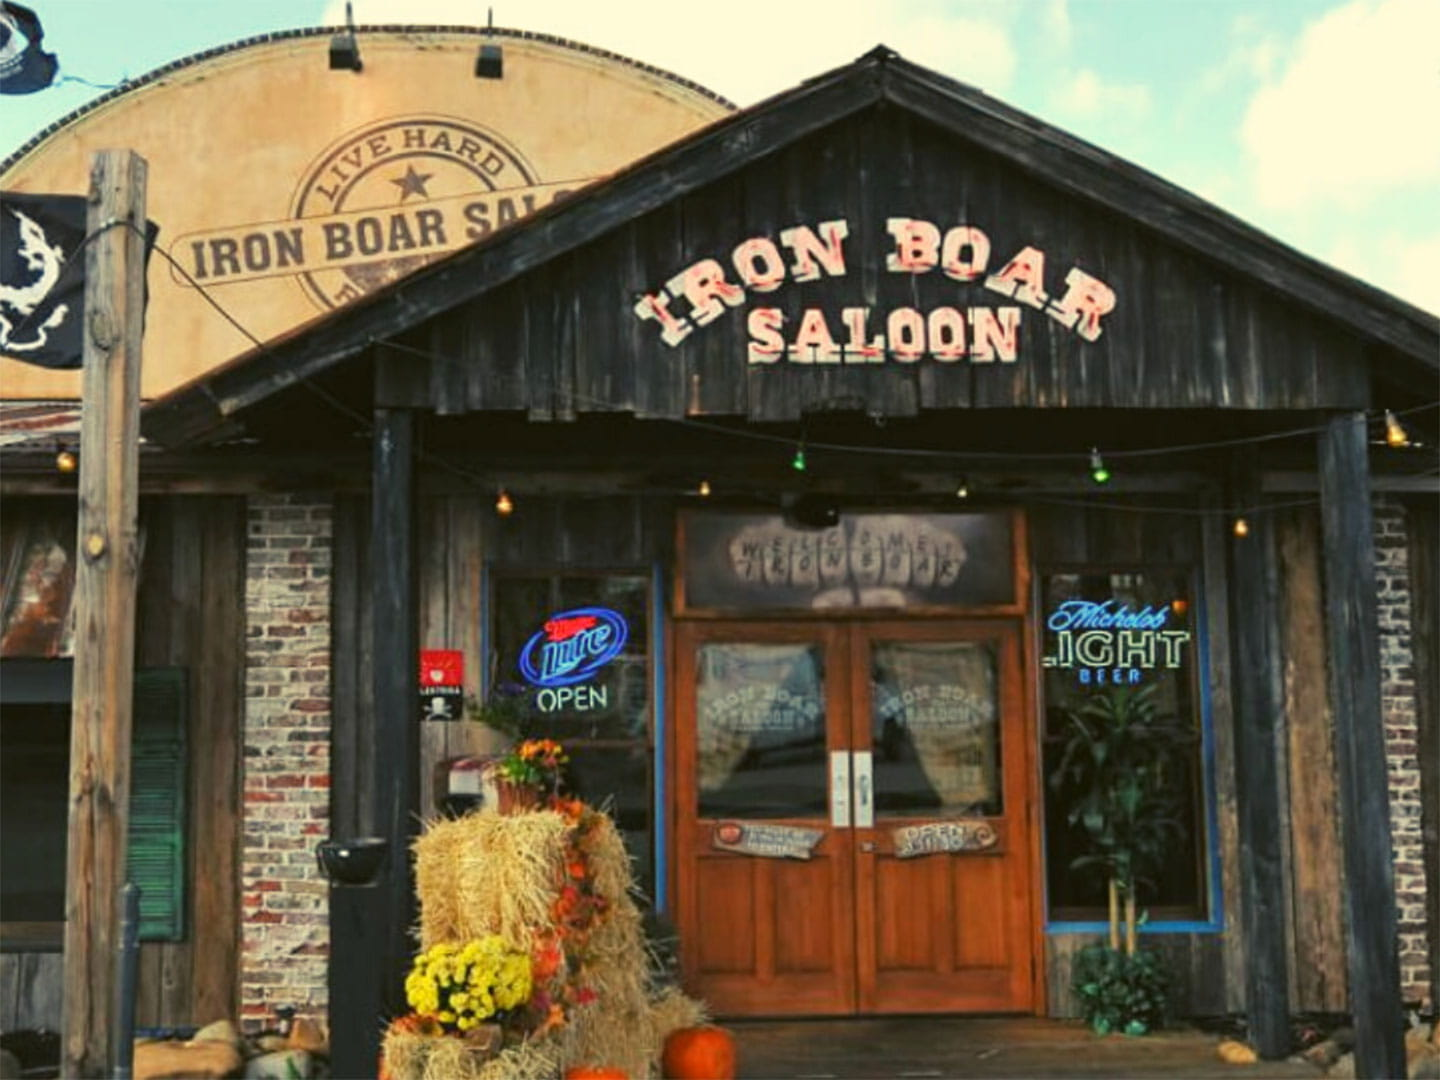 Front of the Iron Boar Saloon